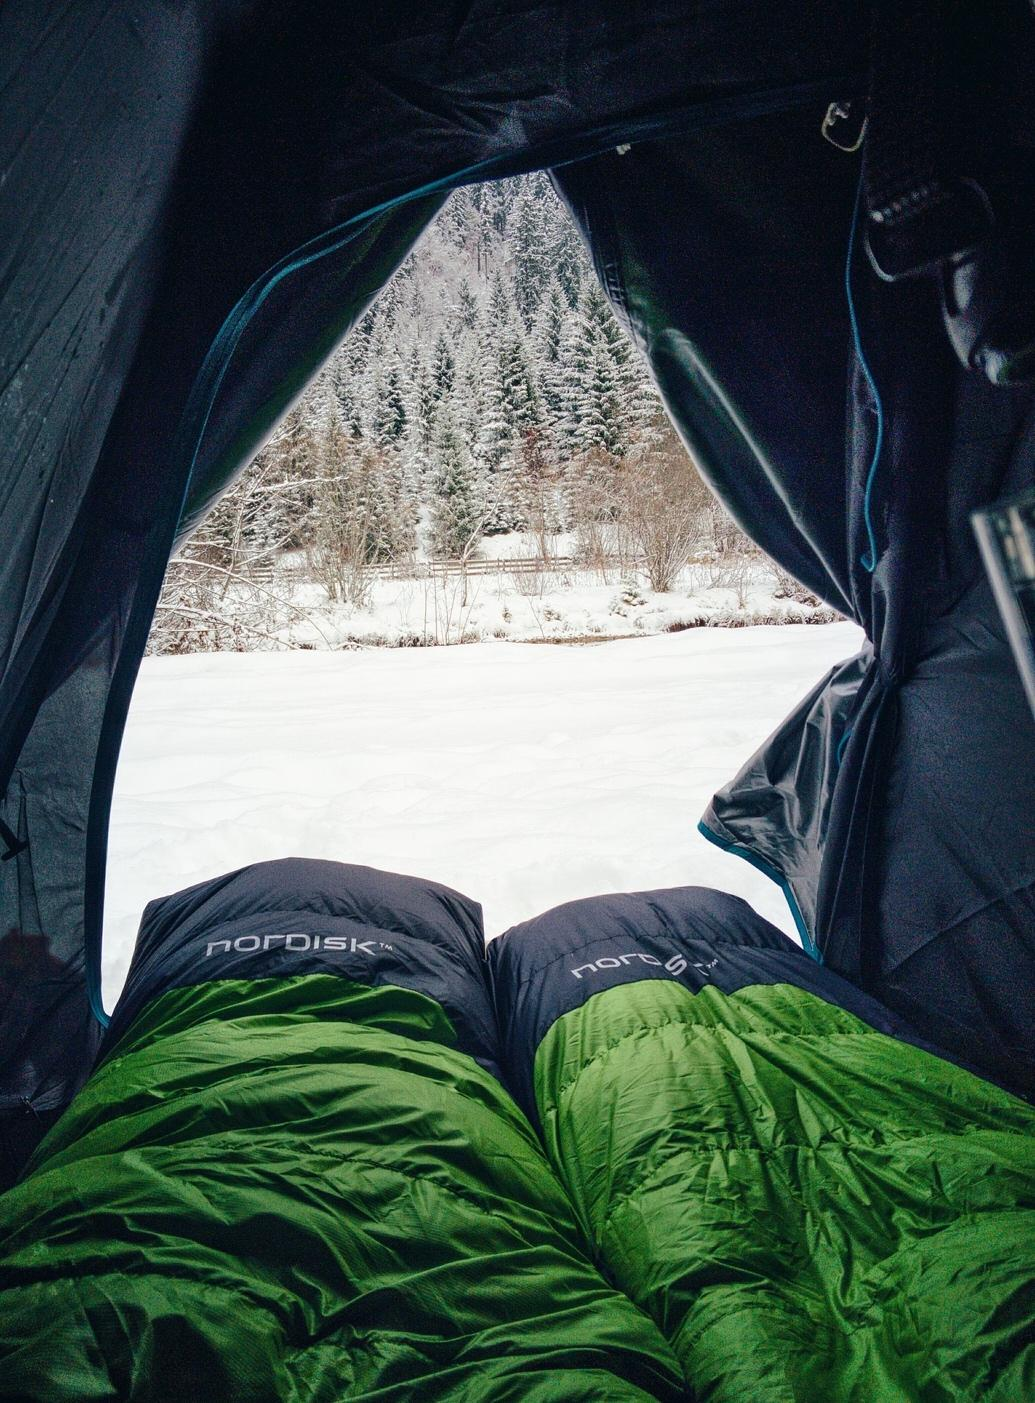 A picture containing green, tent, clothes  Description automatically generated